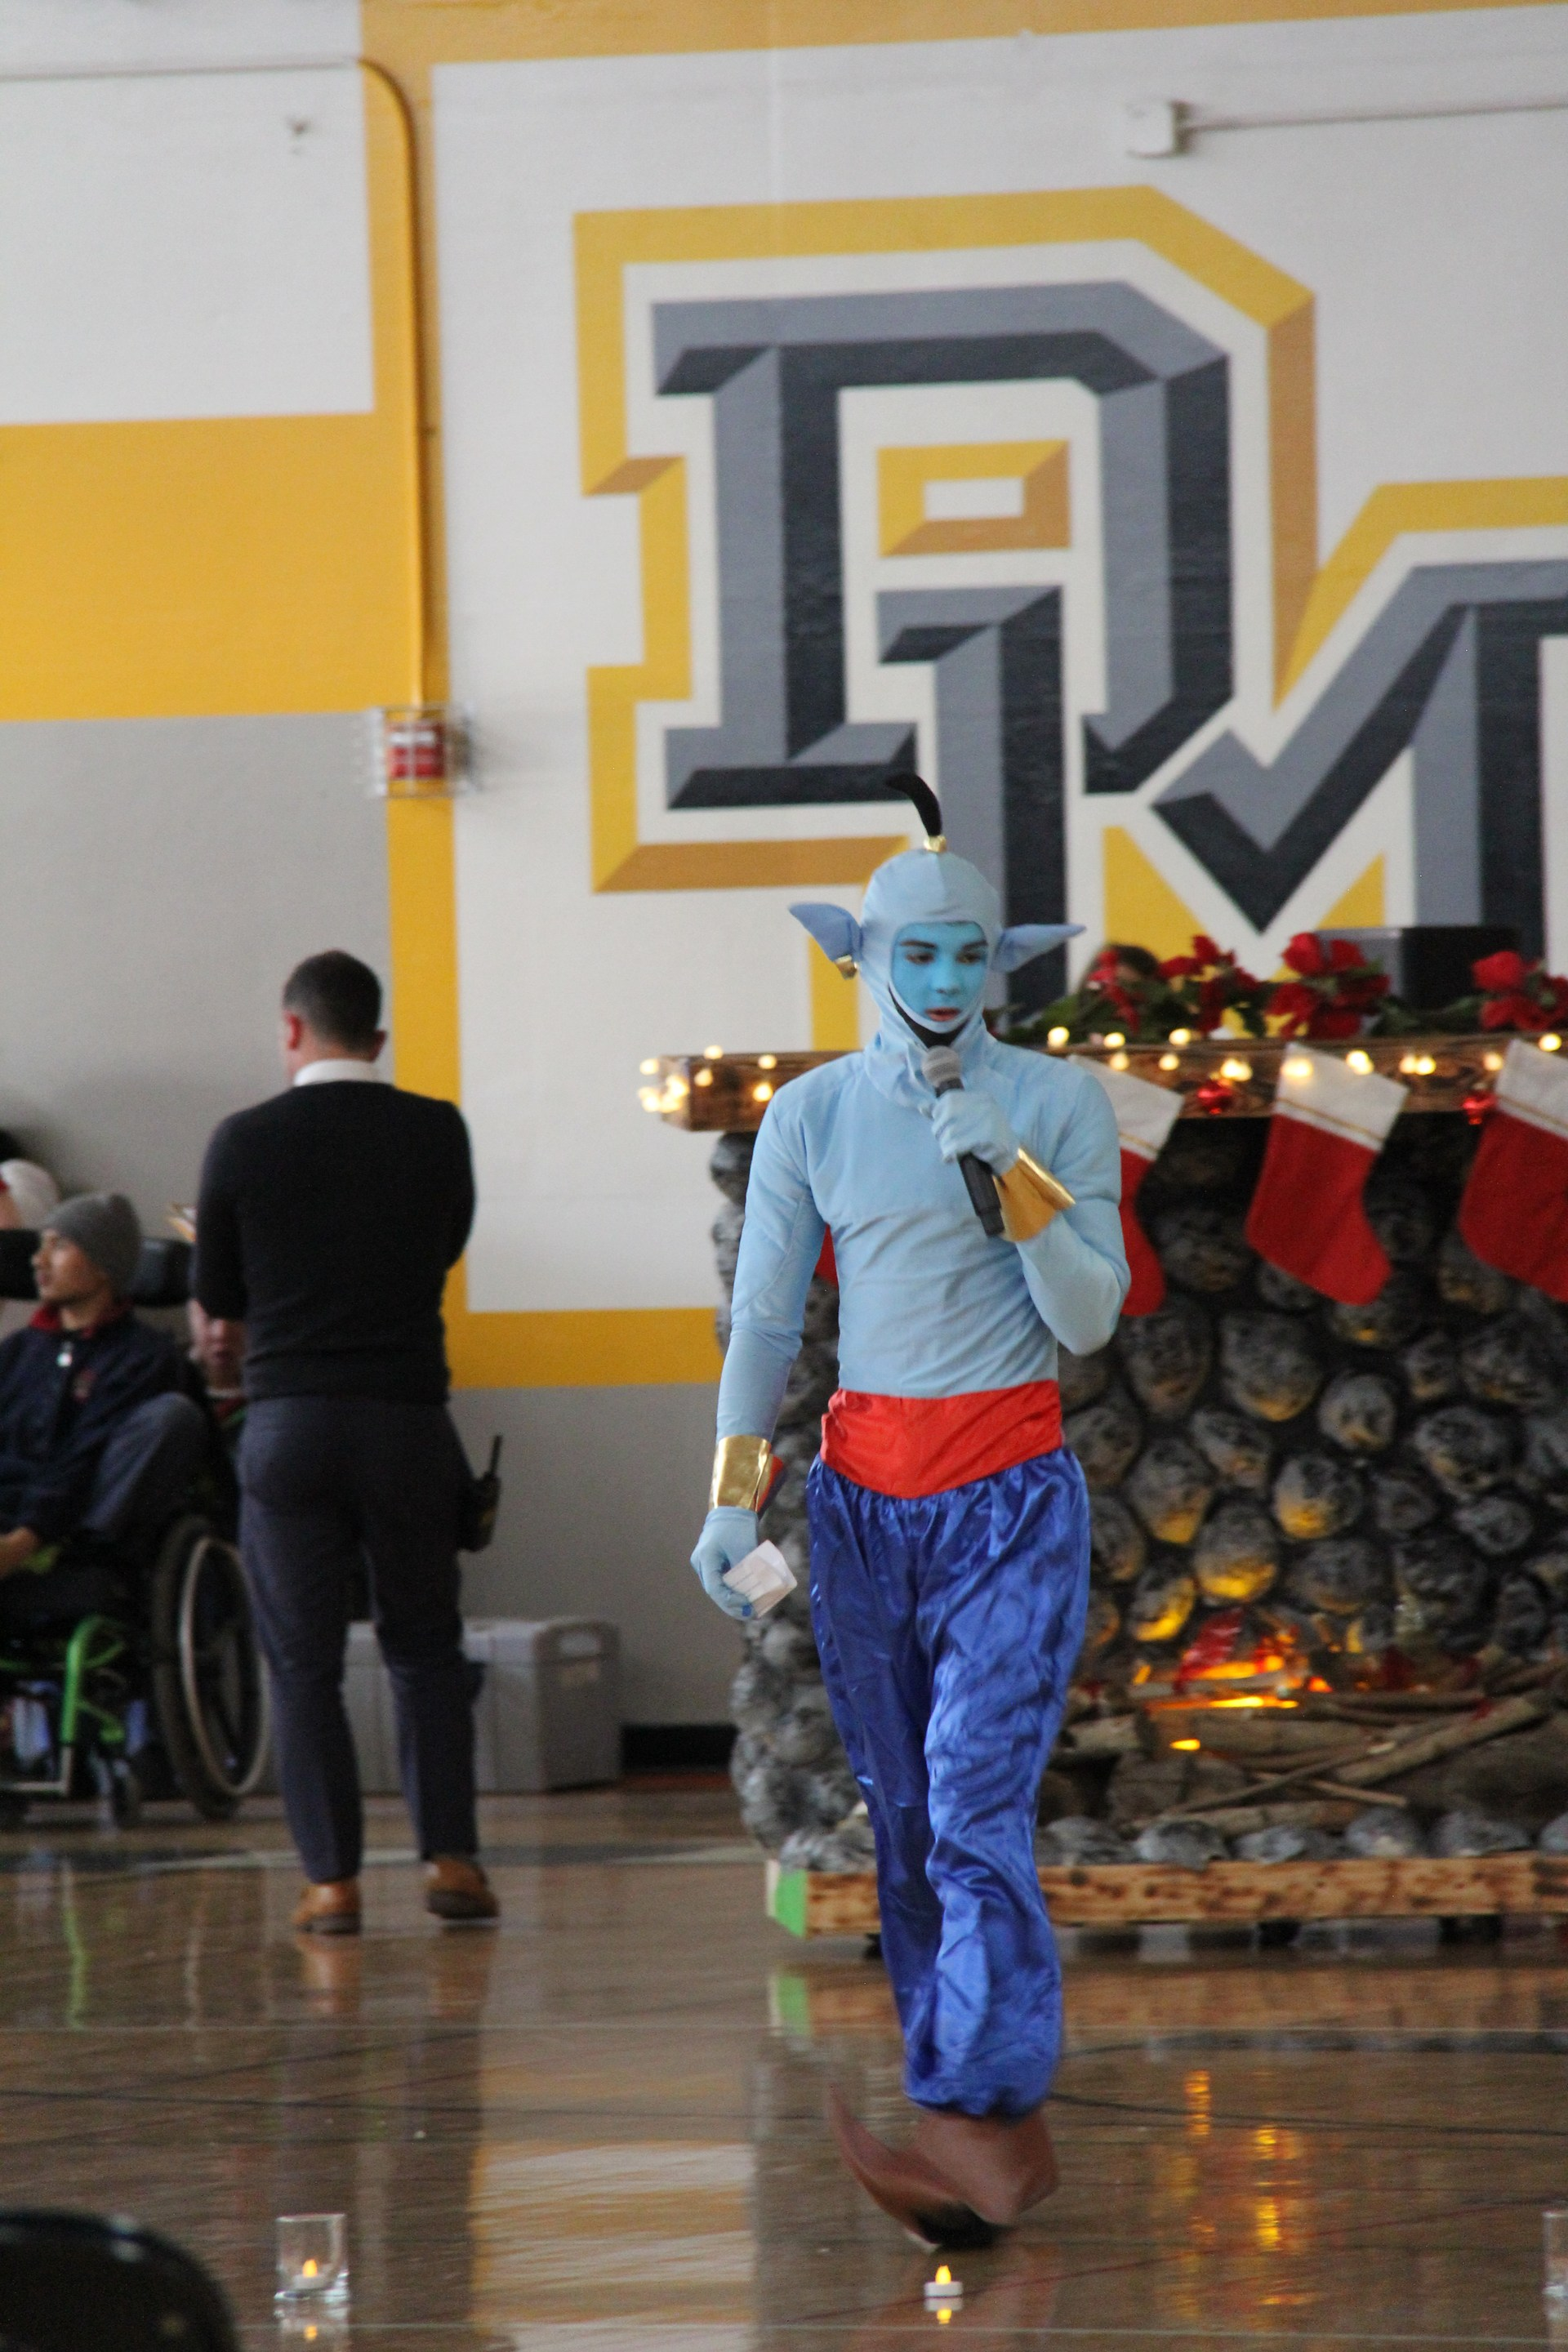 Image of student dressed as genie during 2017 winter wishes event